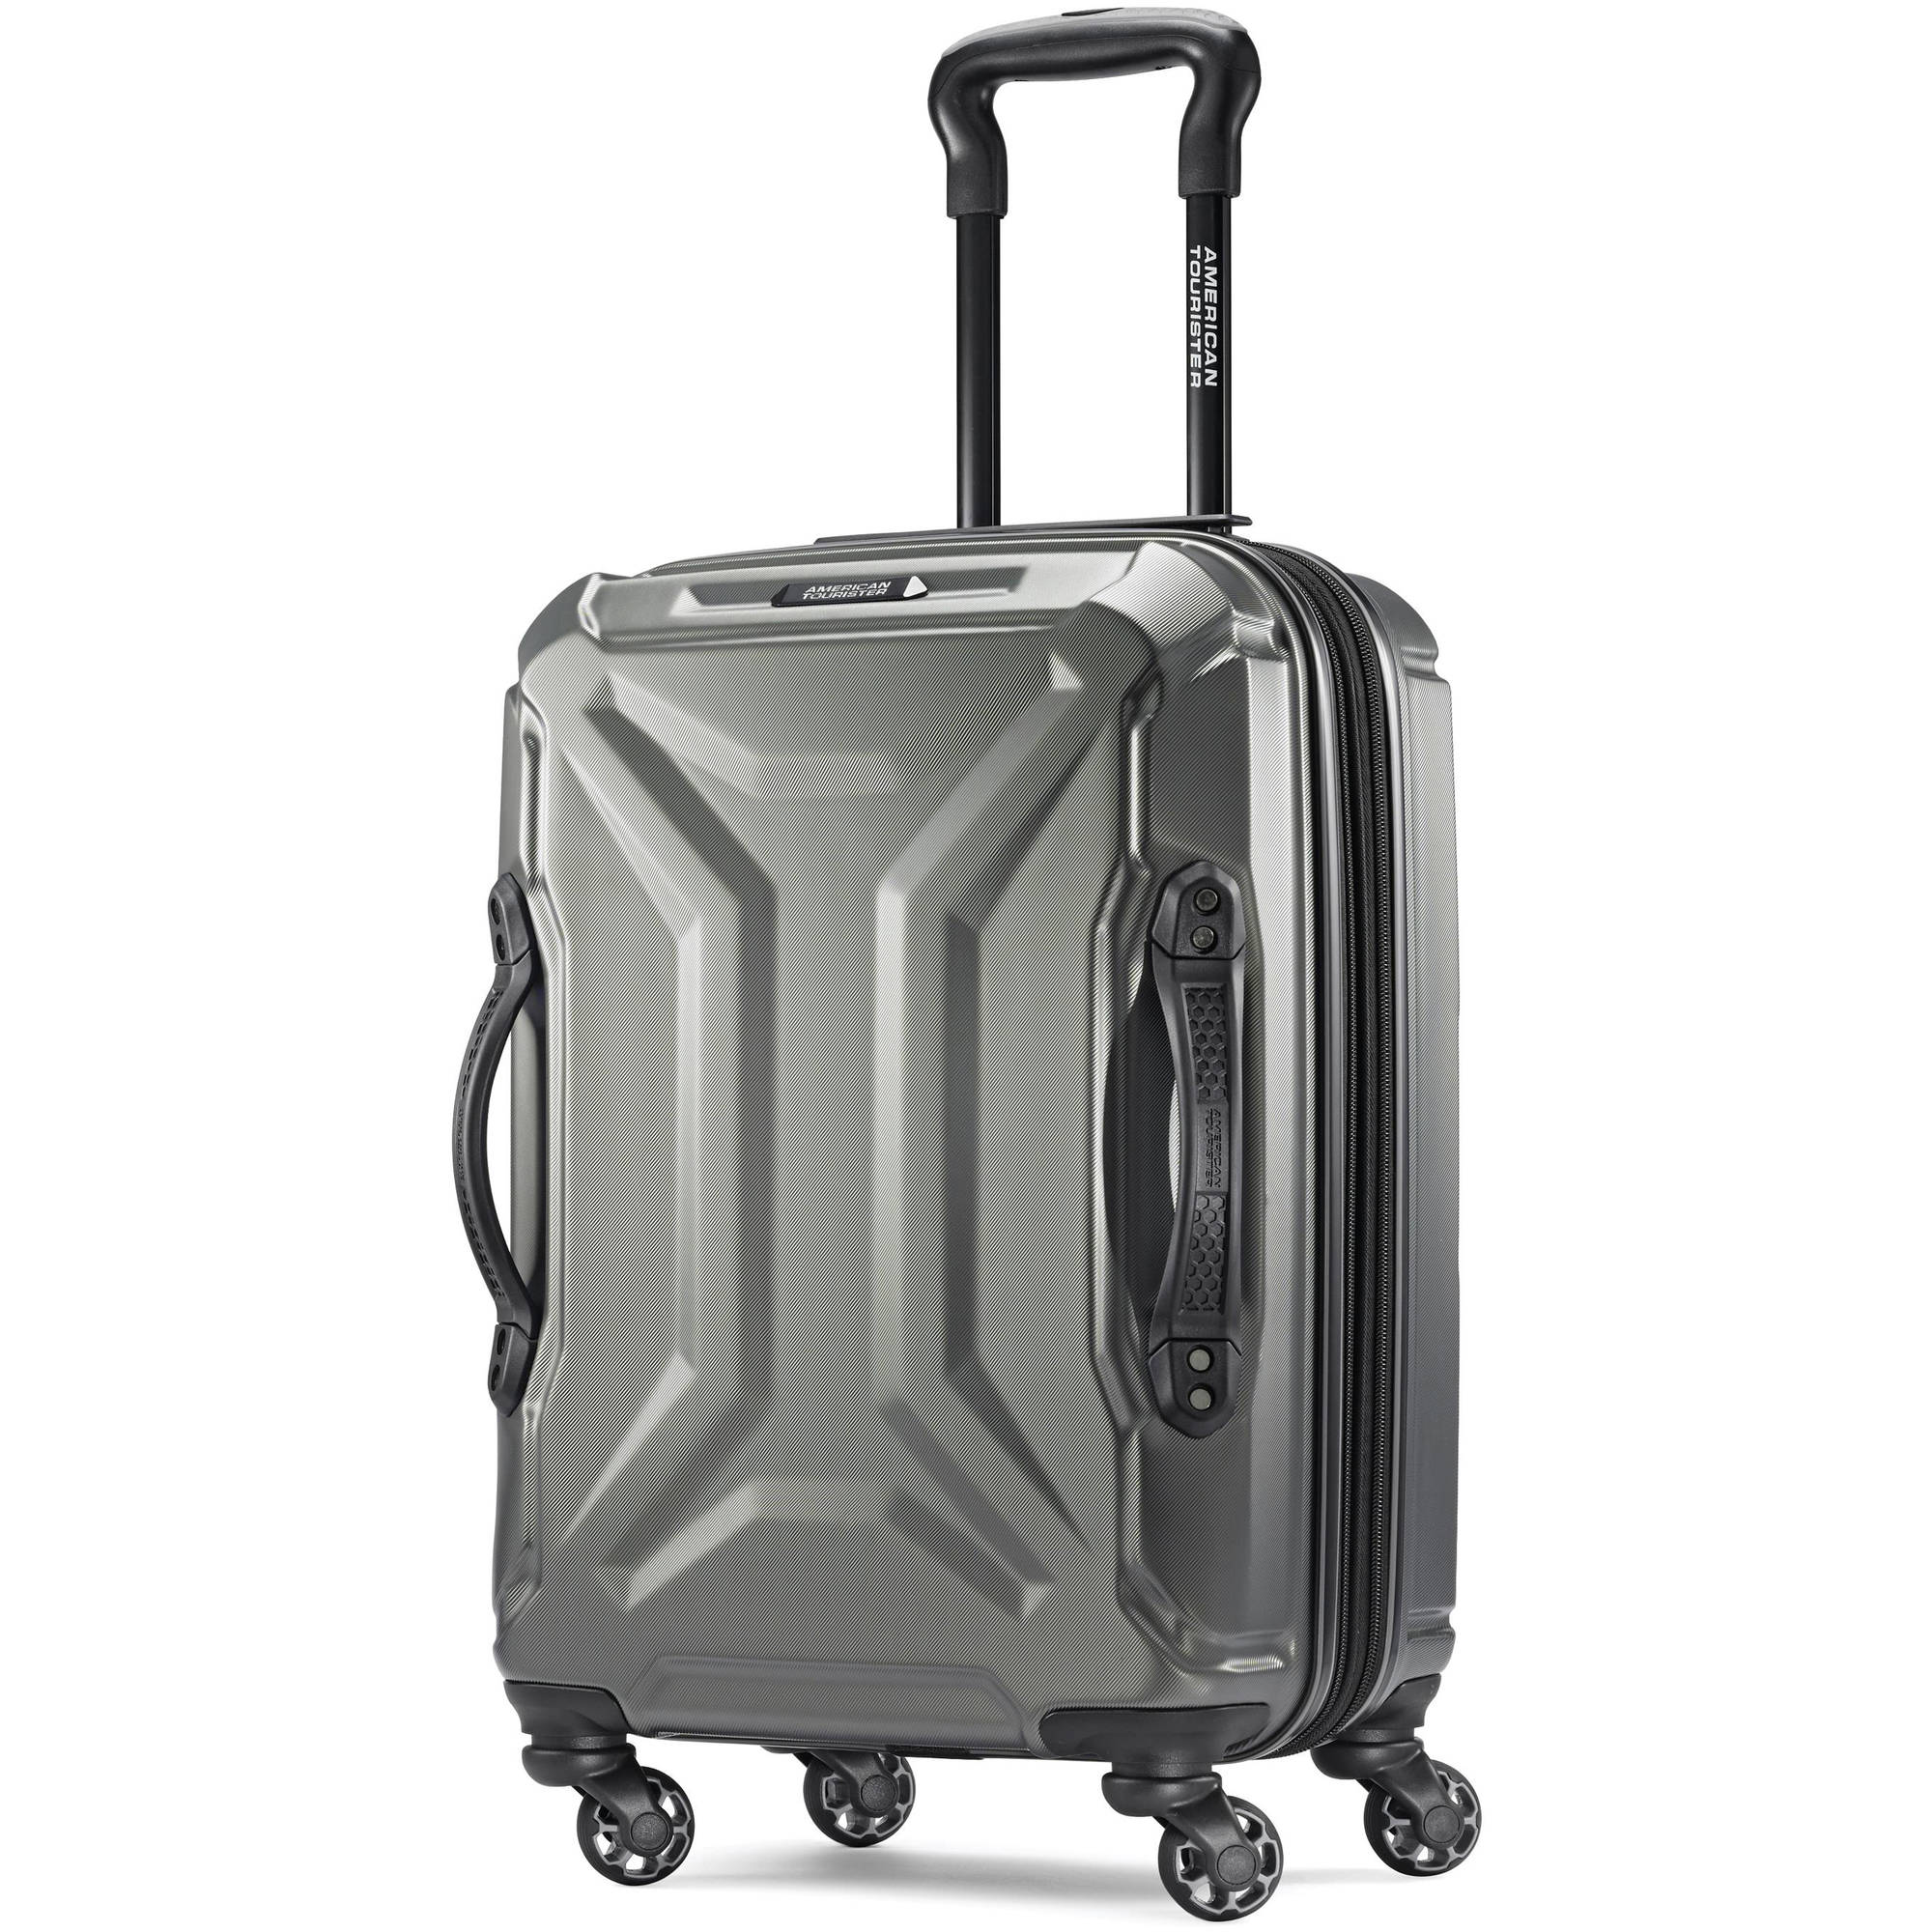 American Tourister Cargo Max 21'' Hardside Spinner Luggage